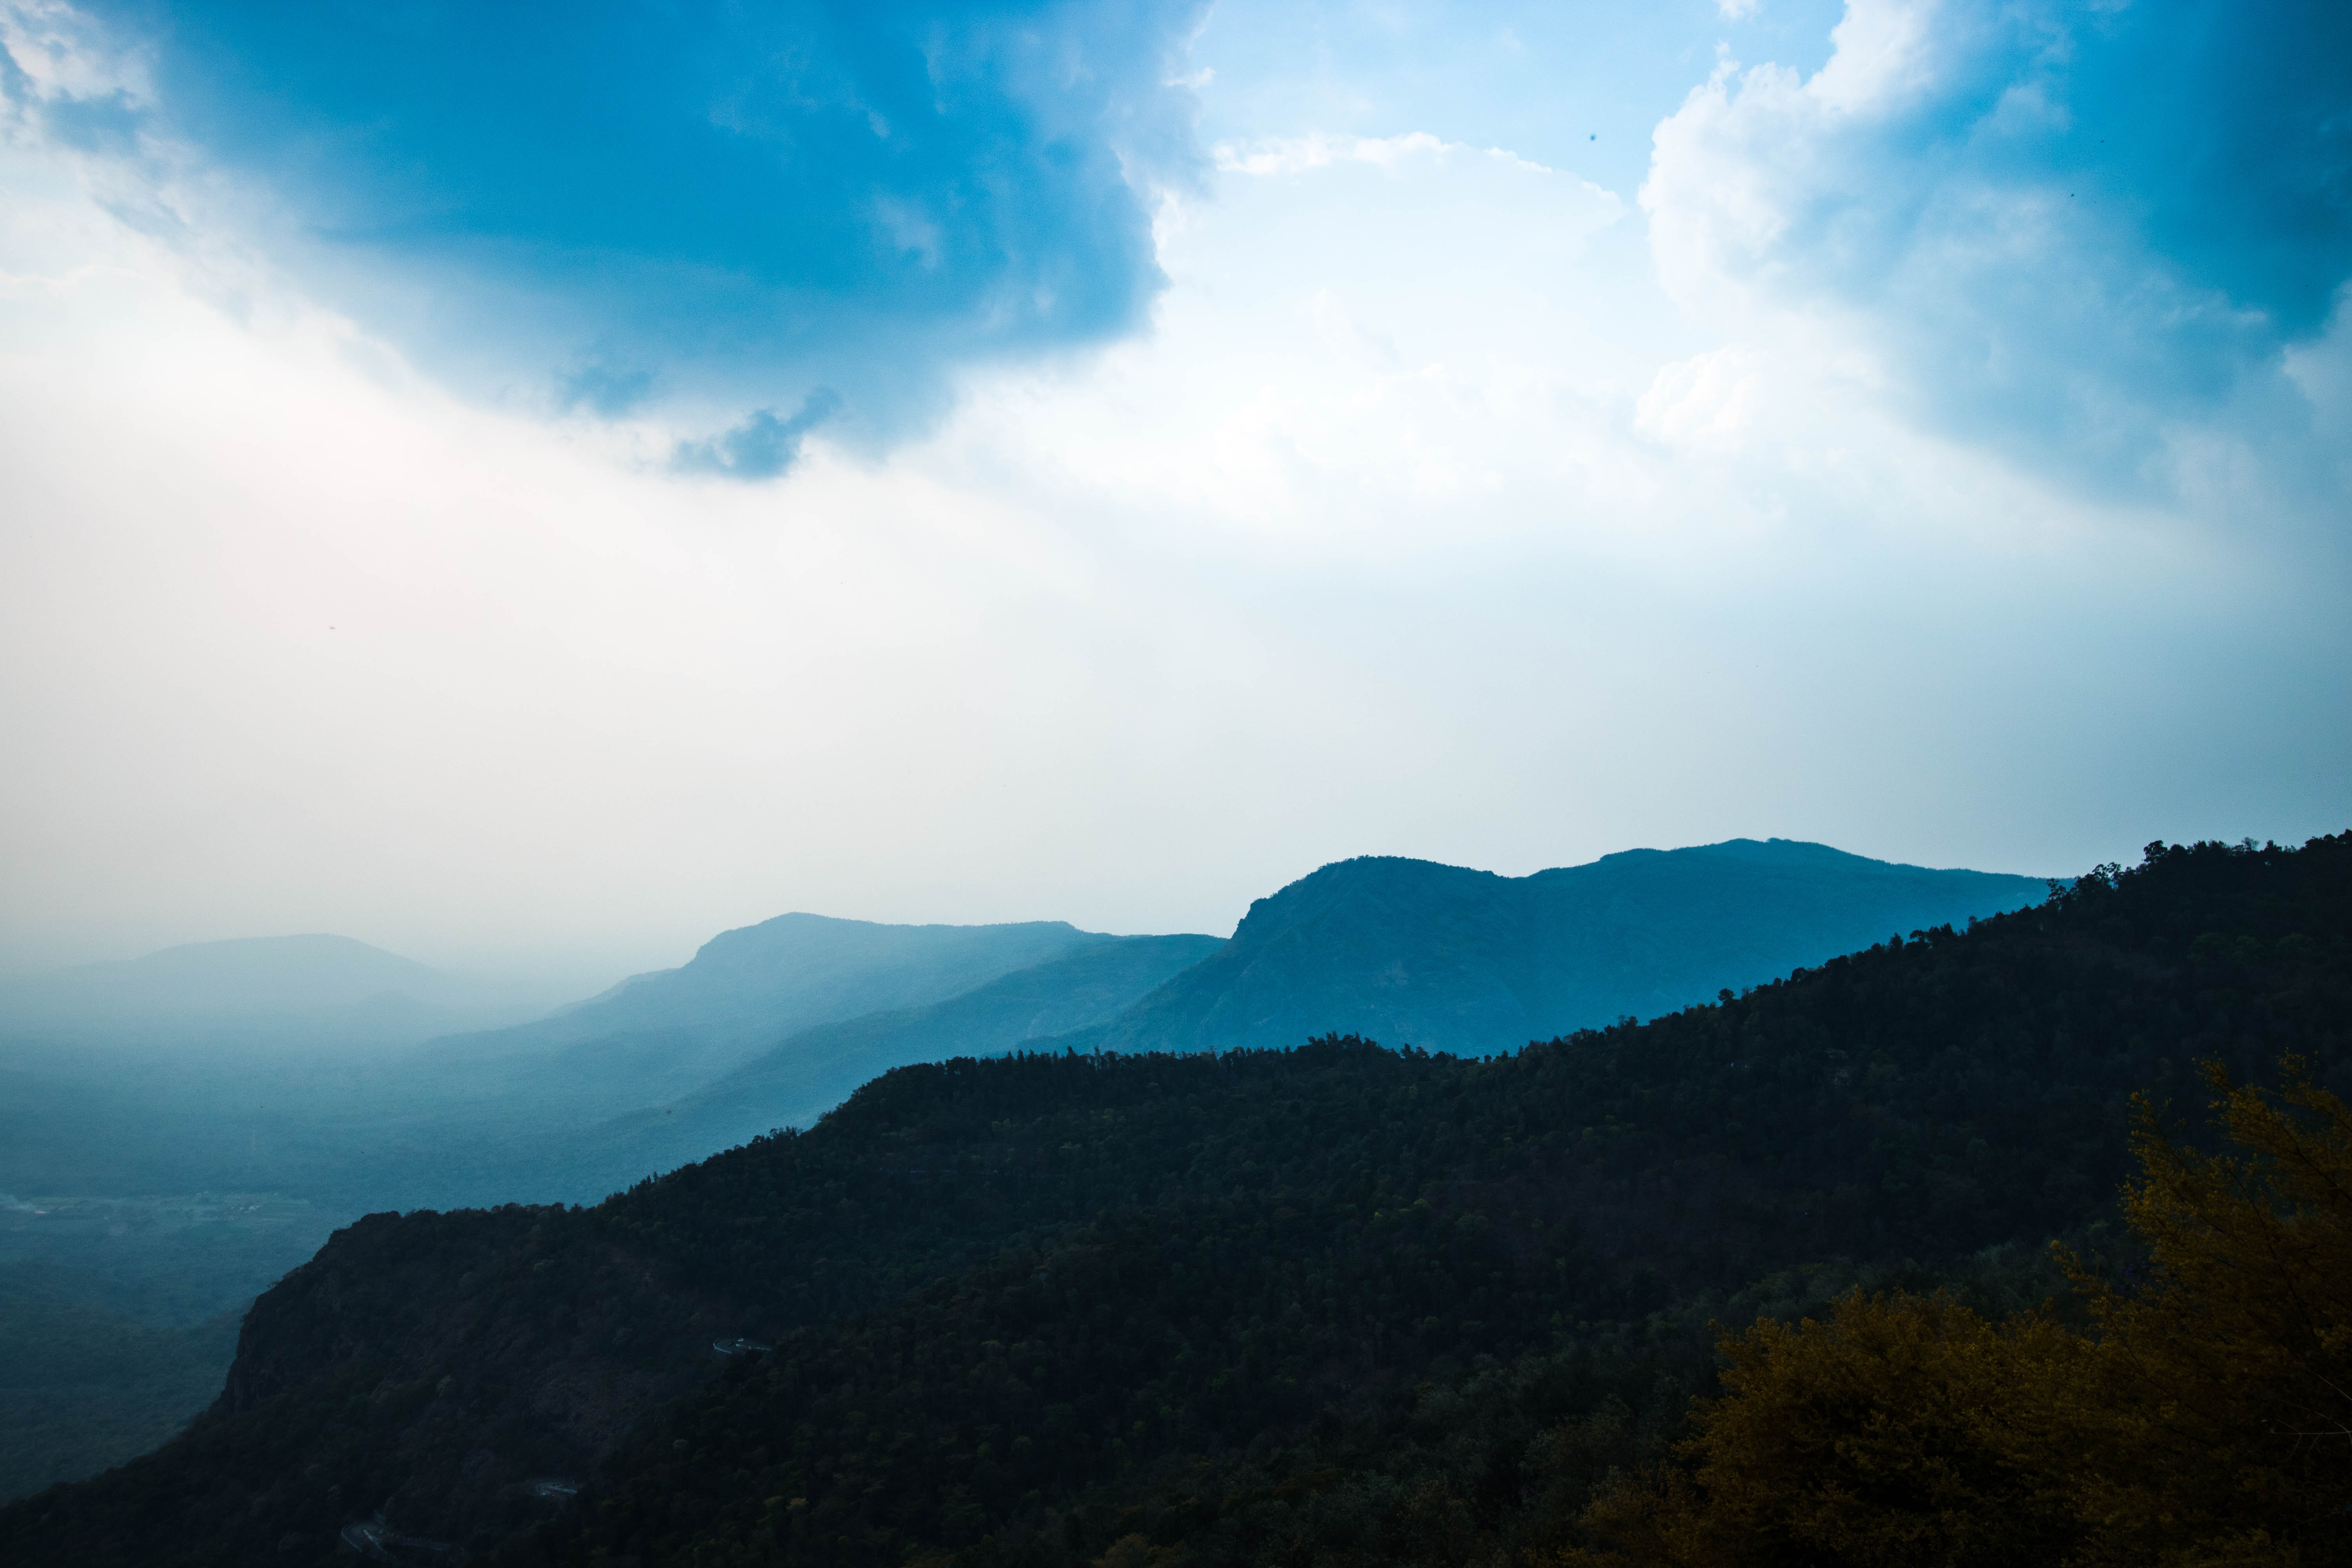 time lapse photography of mountain under clouds